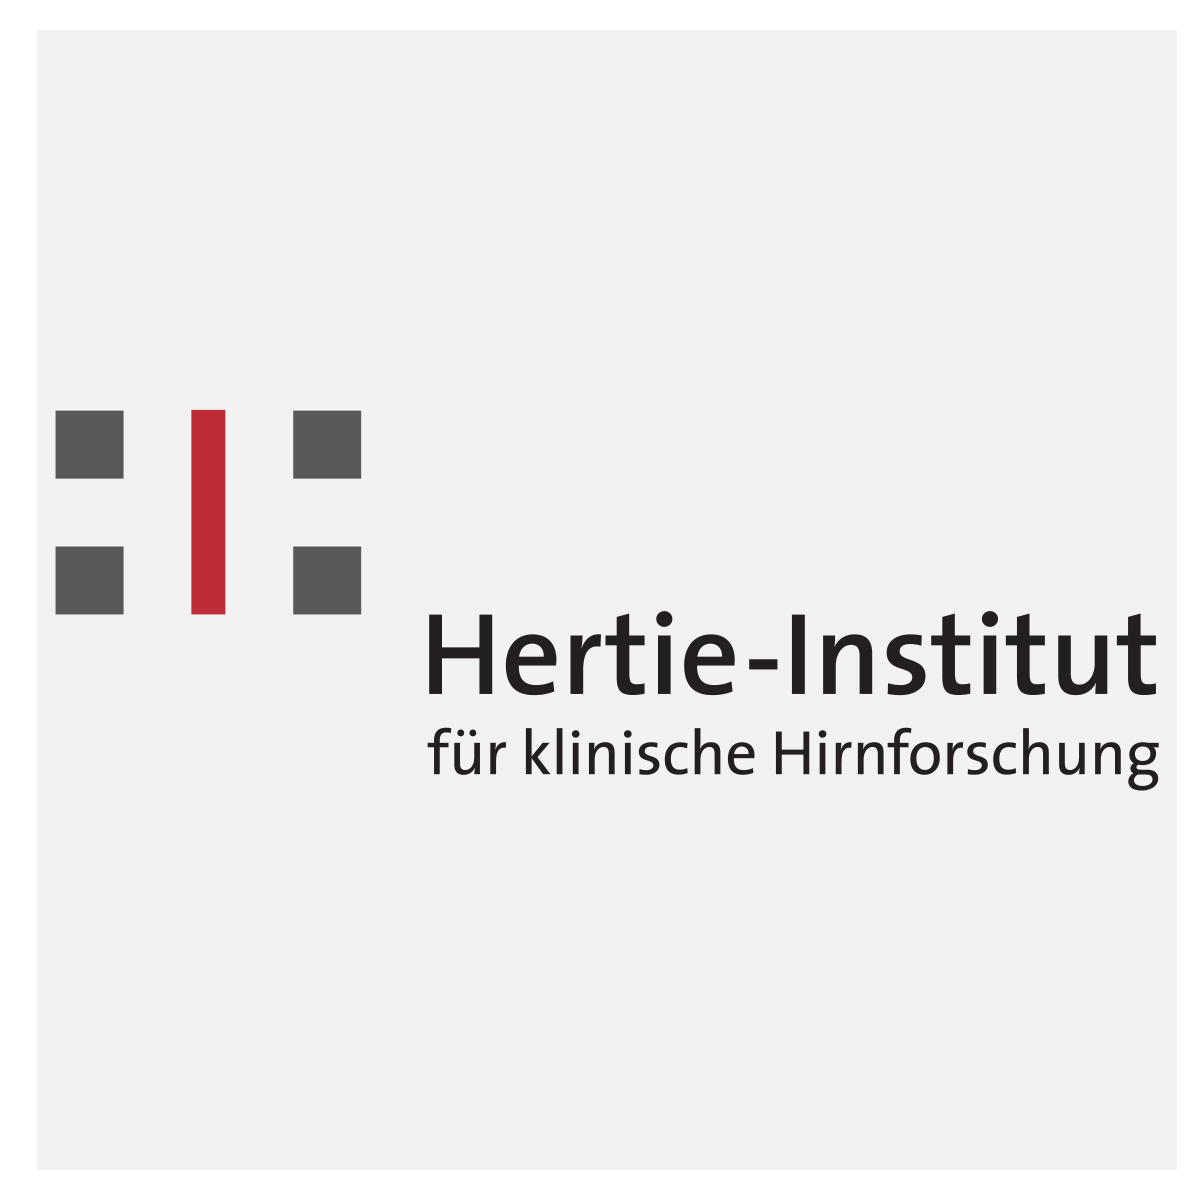 Logo of the Hertie Institute for Clinical Brain Research